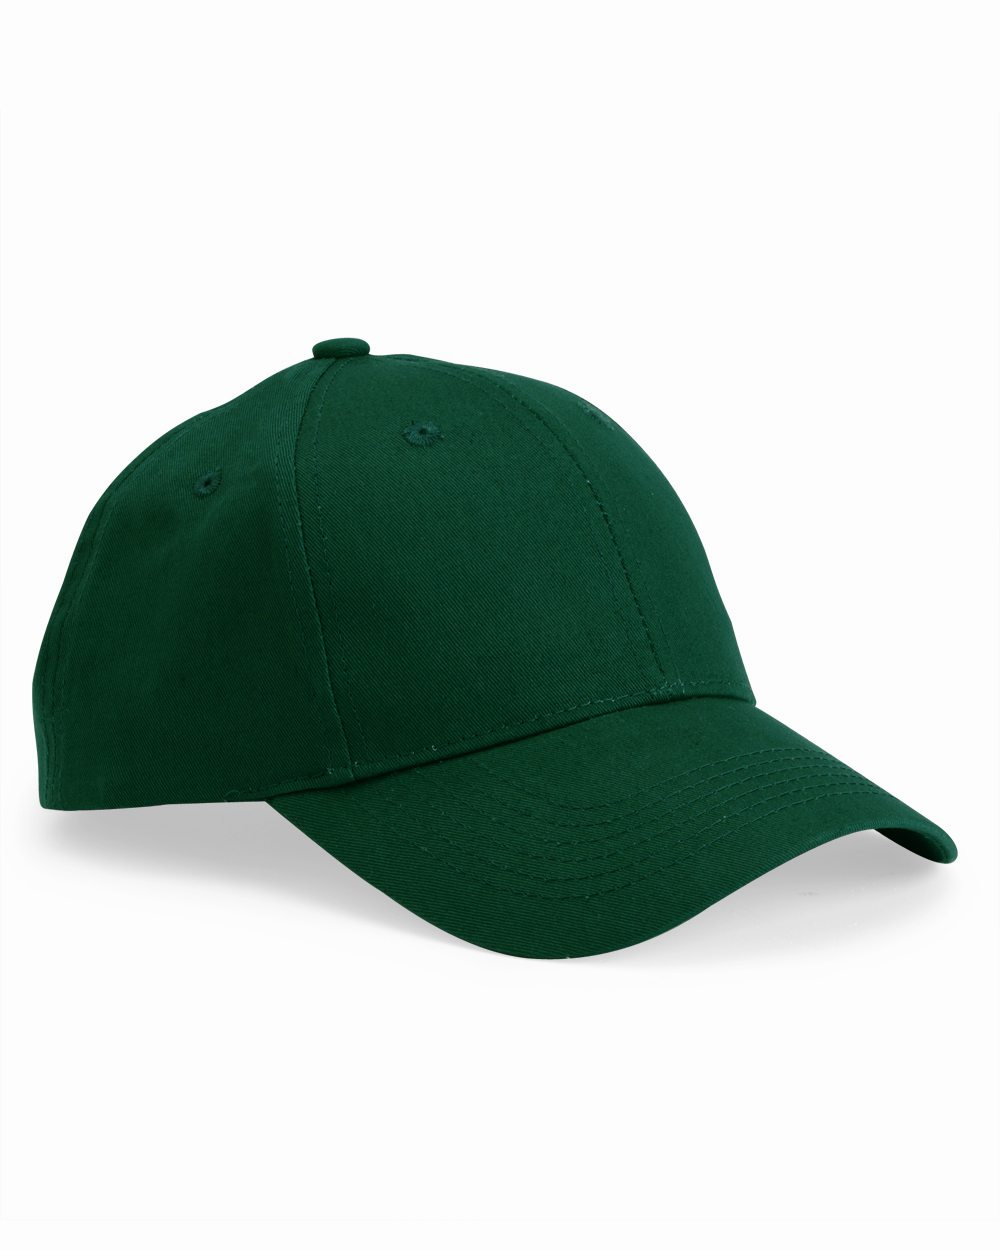 Valucap VC100 Lightweight Structured Cotton Twill Cap with Plastic Tab Closure